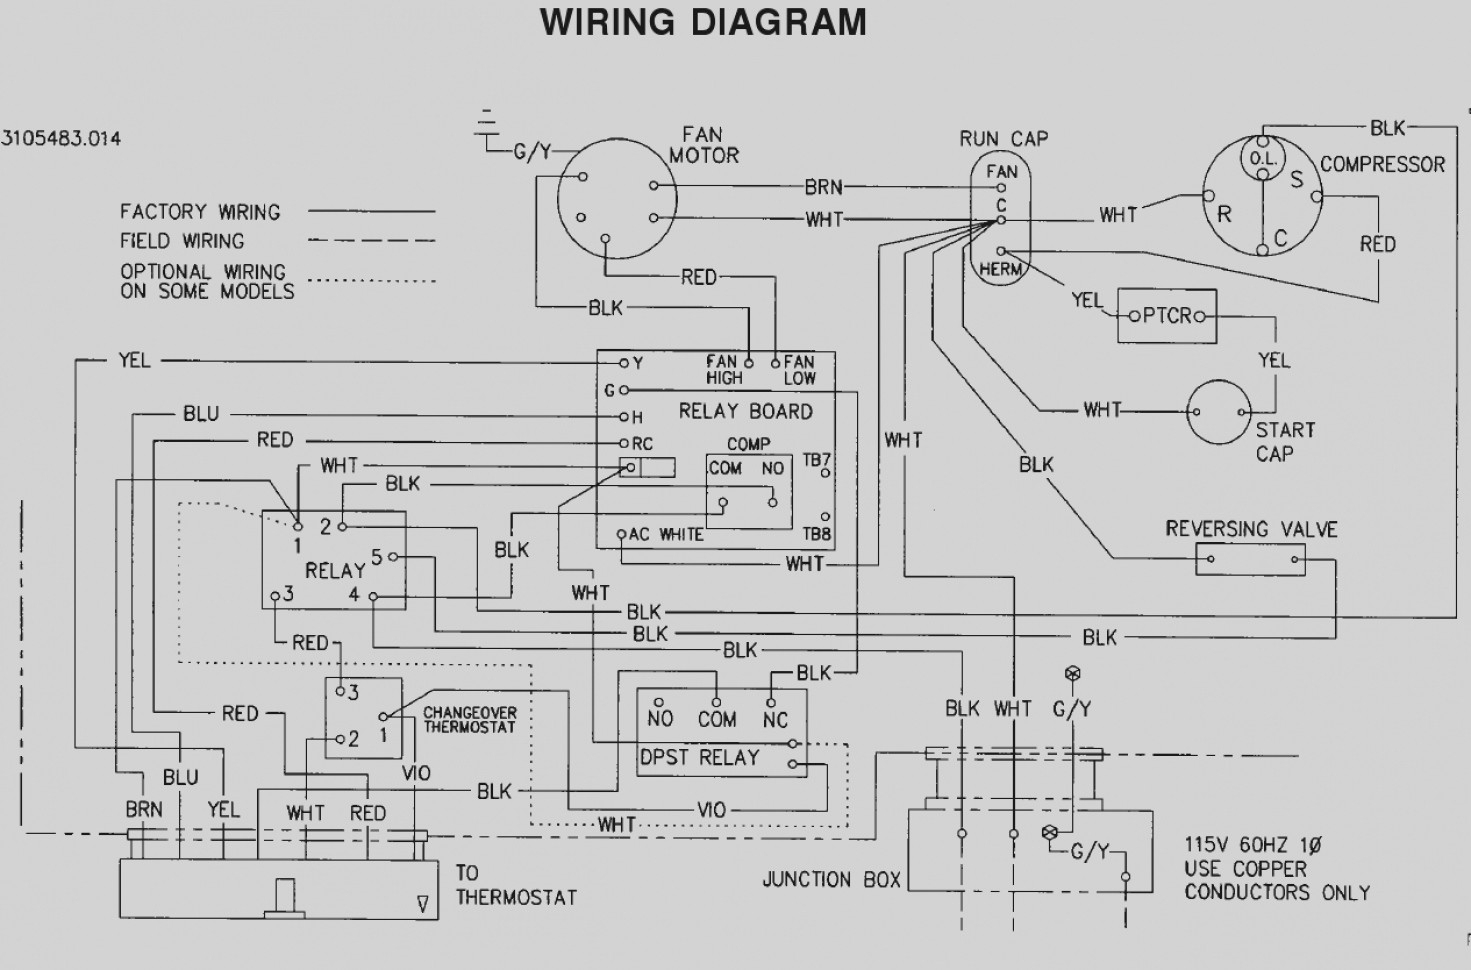 dometic ac control box wiring online wiring diagram. Black Bedroom Furniture Sets. Home Design Ideas